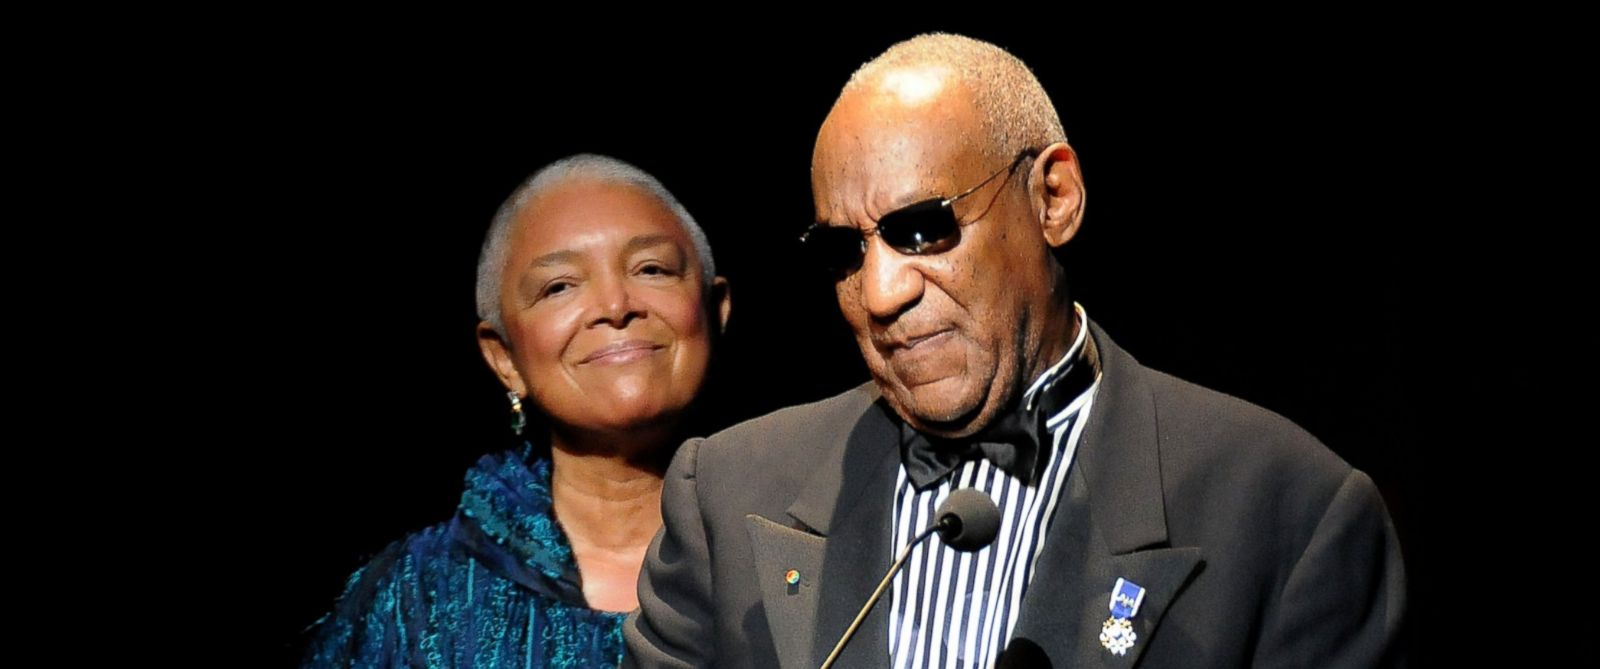 PHOTO: Camille and Bill Cosby attend the Apollo Theaters 75th Anniversary Gala at The Apollo Theater, June 8, 2009 in New York.